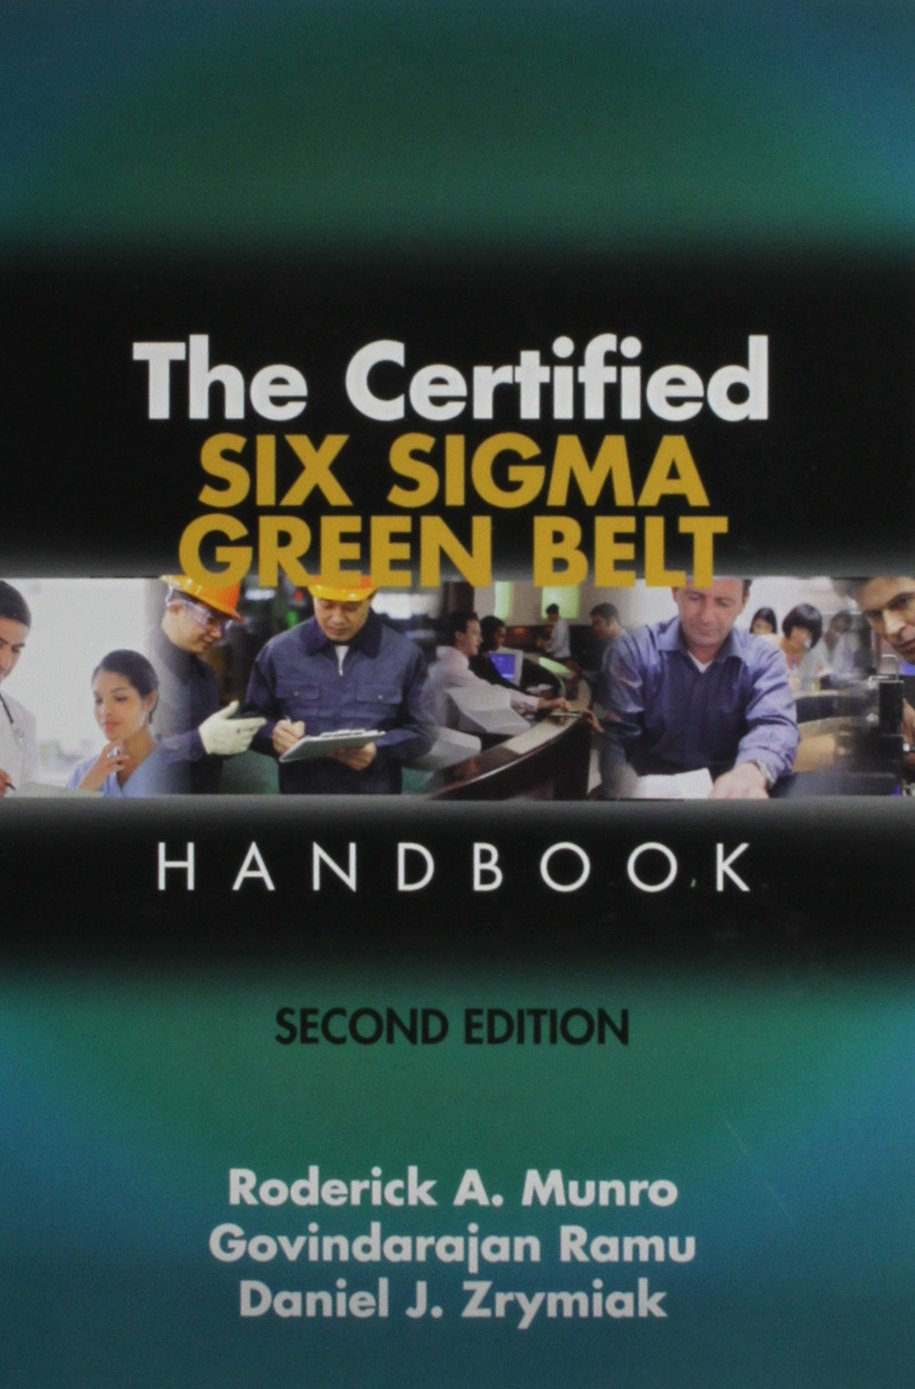 The Certified Six Sigma Green Belt Handbook Amazon Roderick A